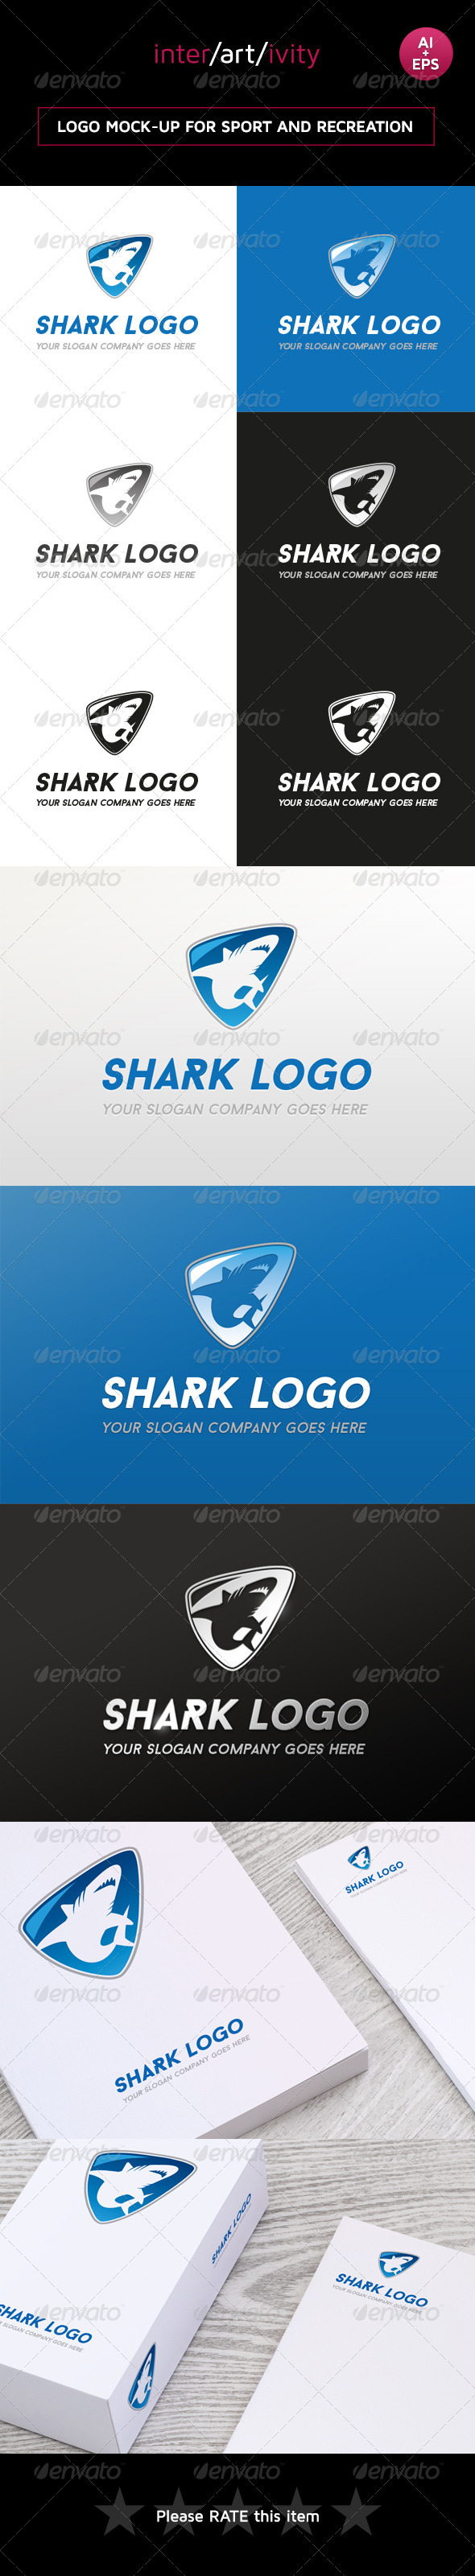 GraphicRiver Shark logo 8422075